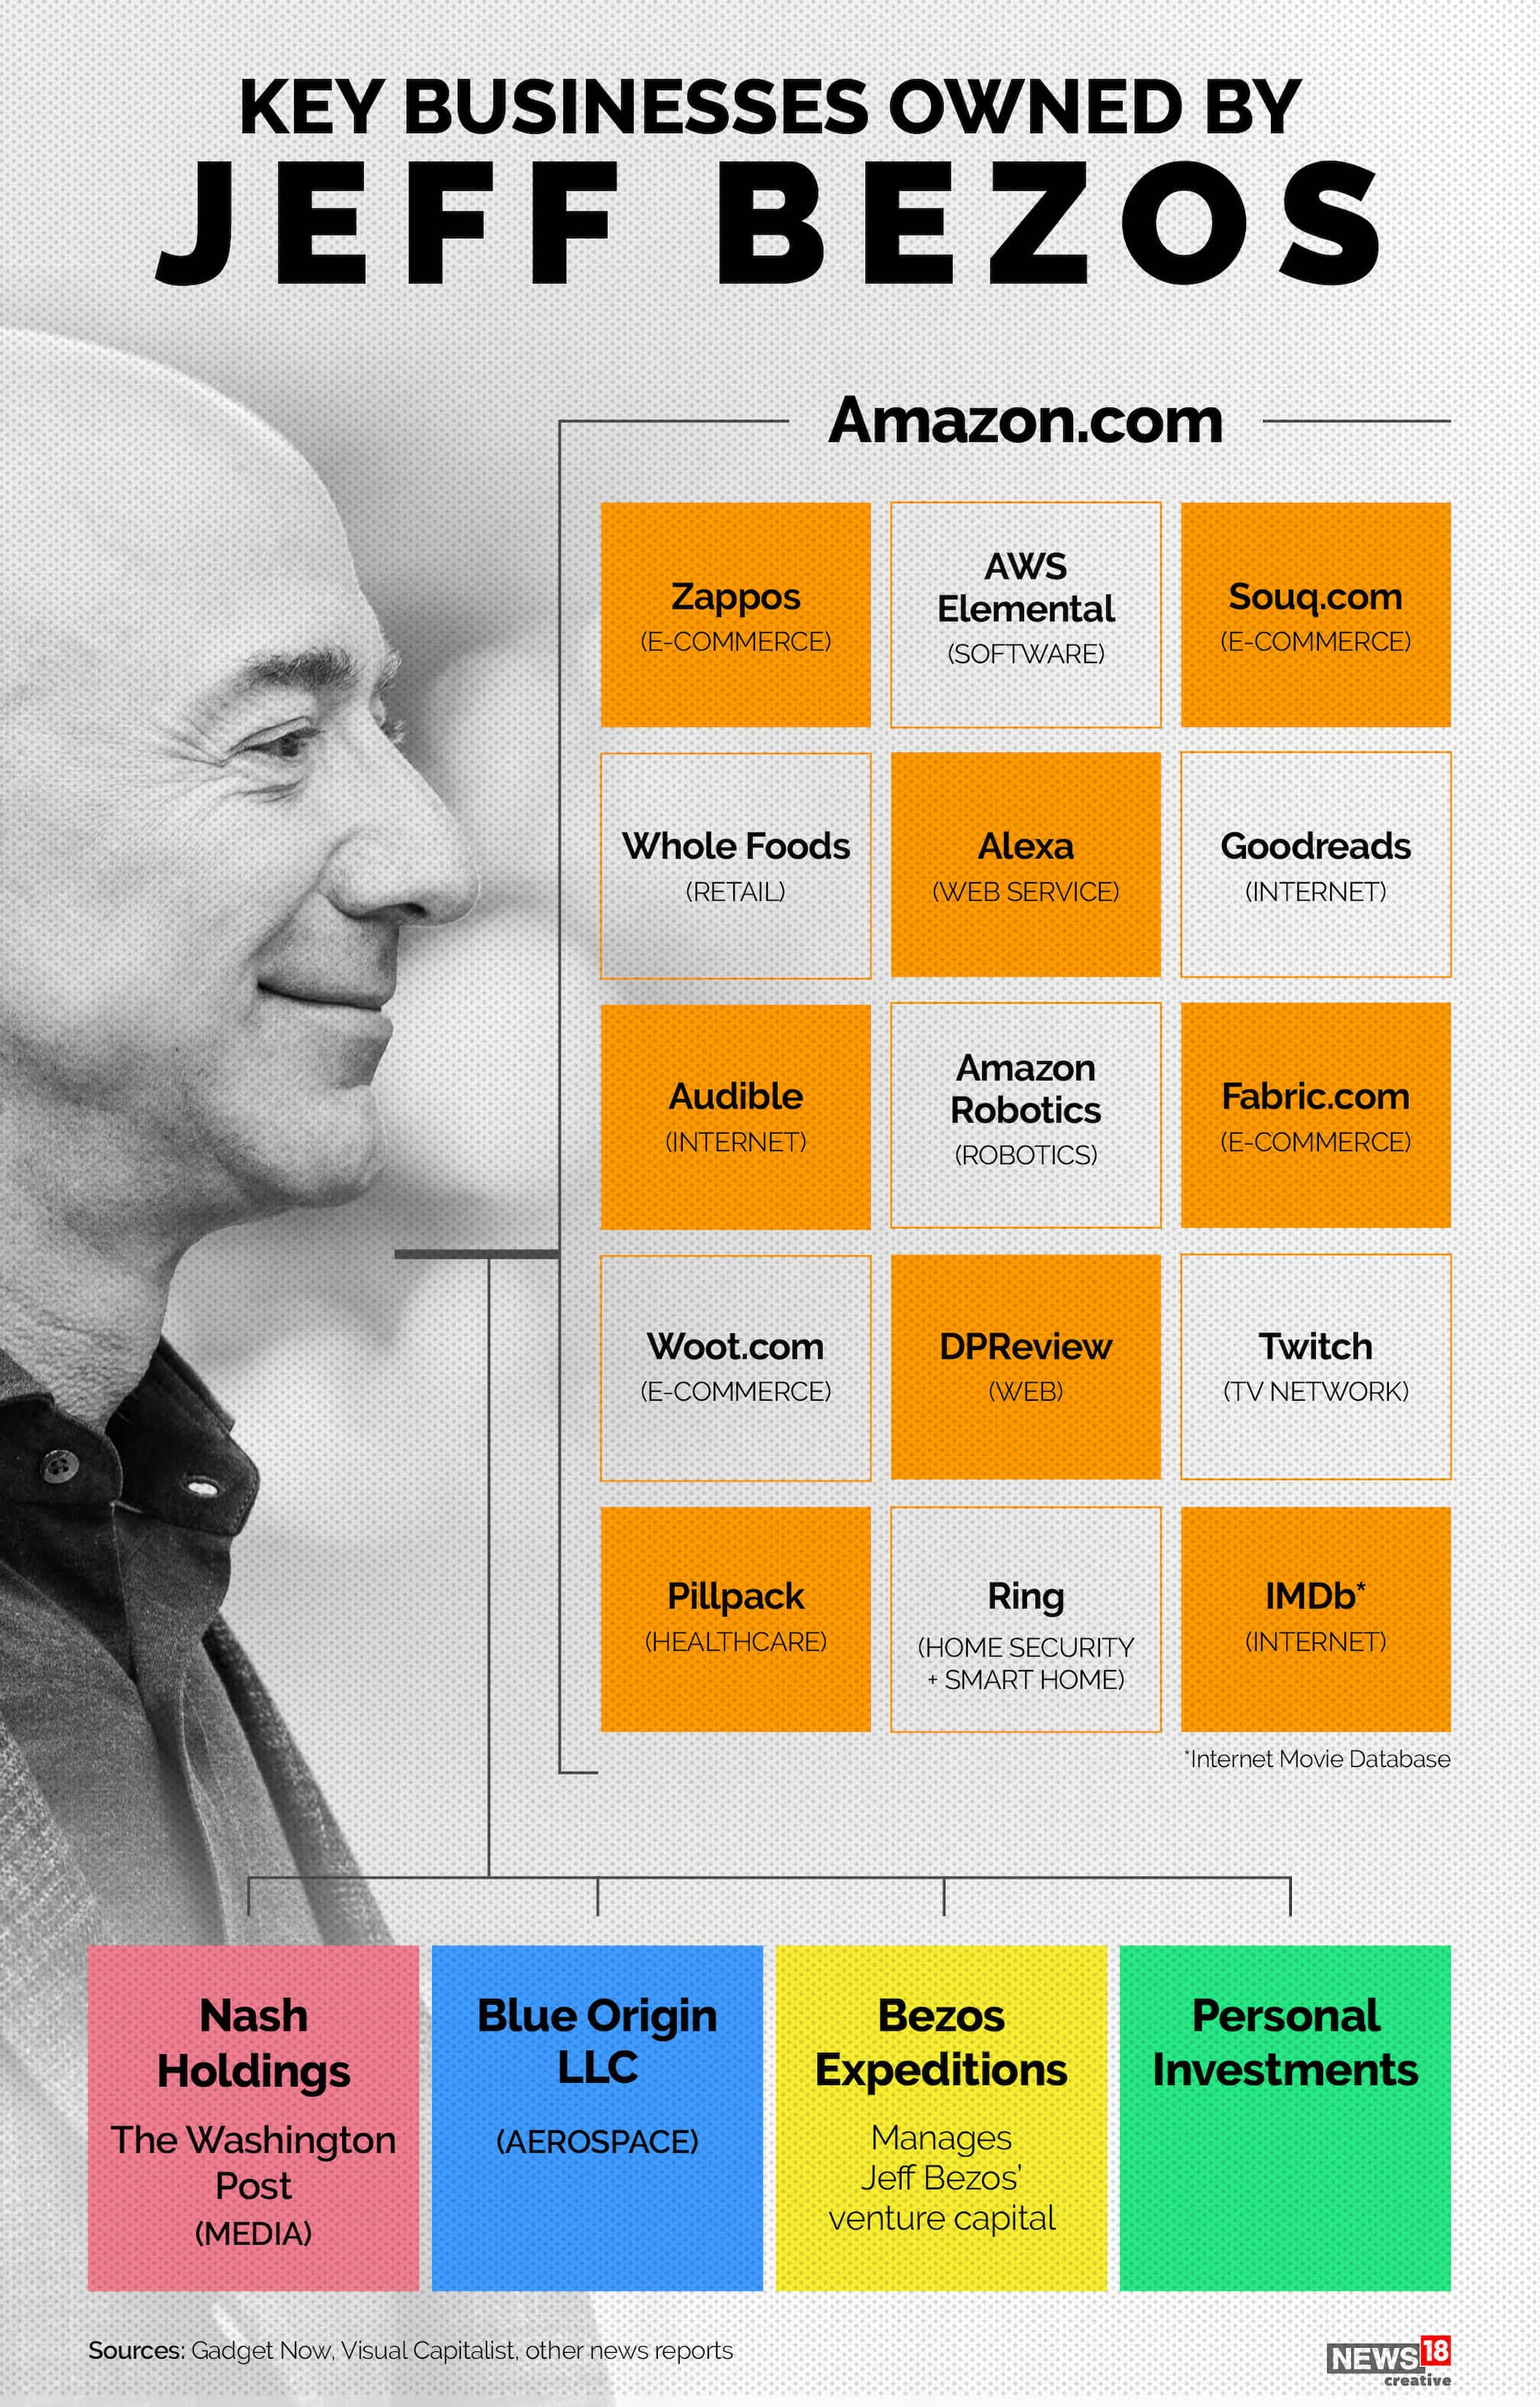 Key businesses owned by Jeff Bezos (Image: News18 Creatives)